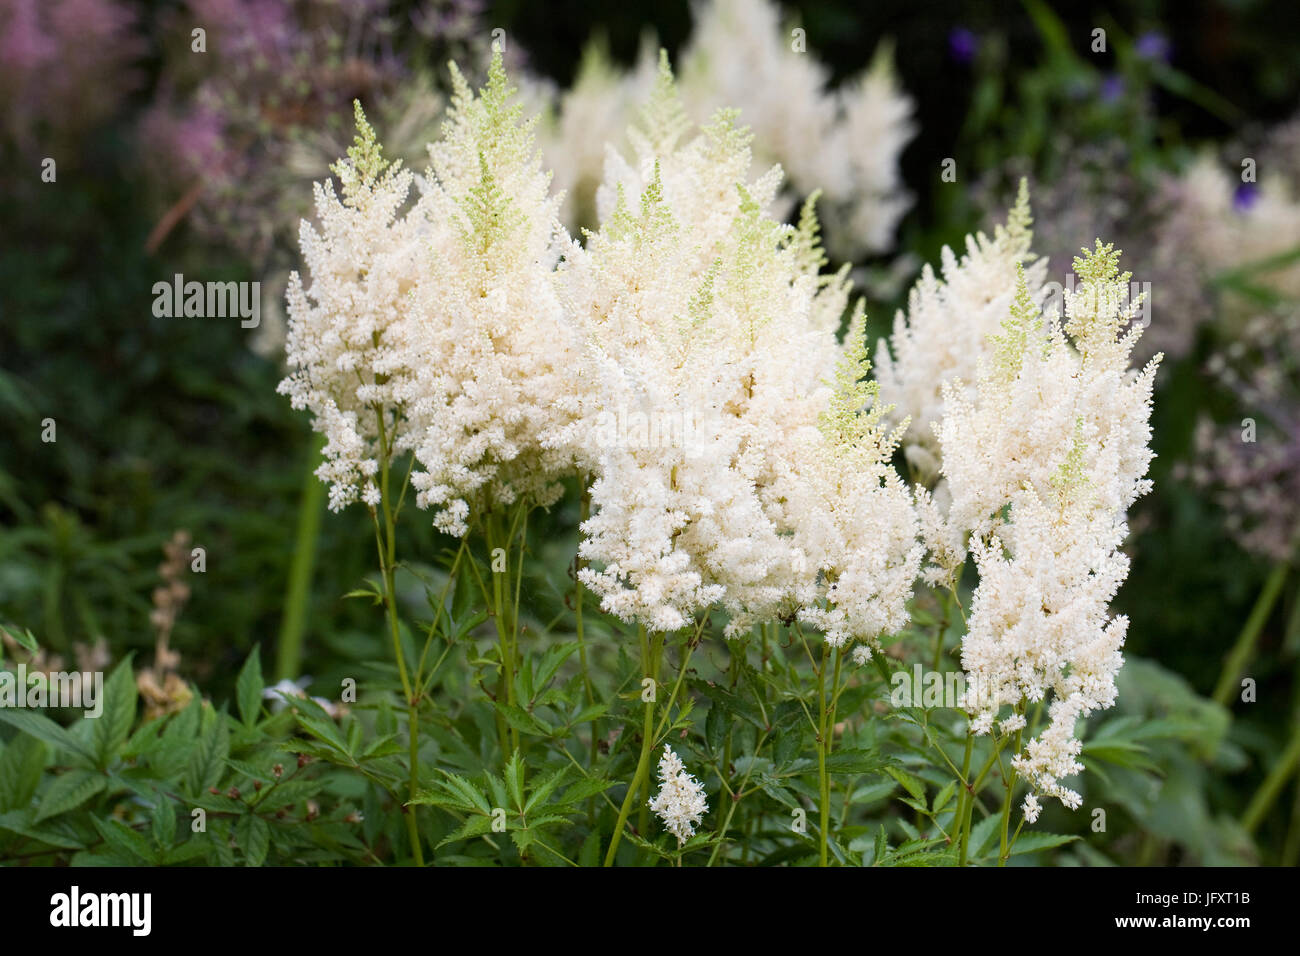 Astilbe 'Weisse Gloria' (x arendsii) flowers. - Stock Image